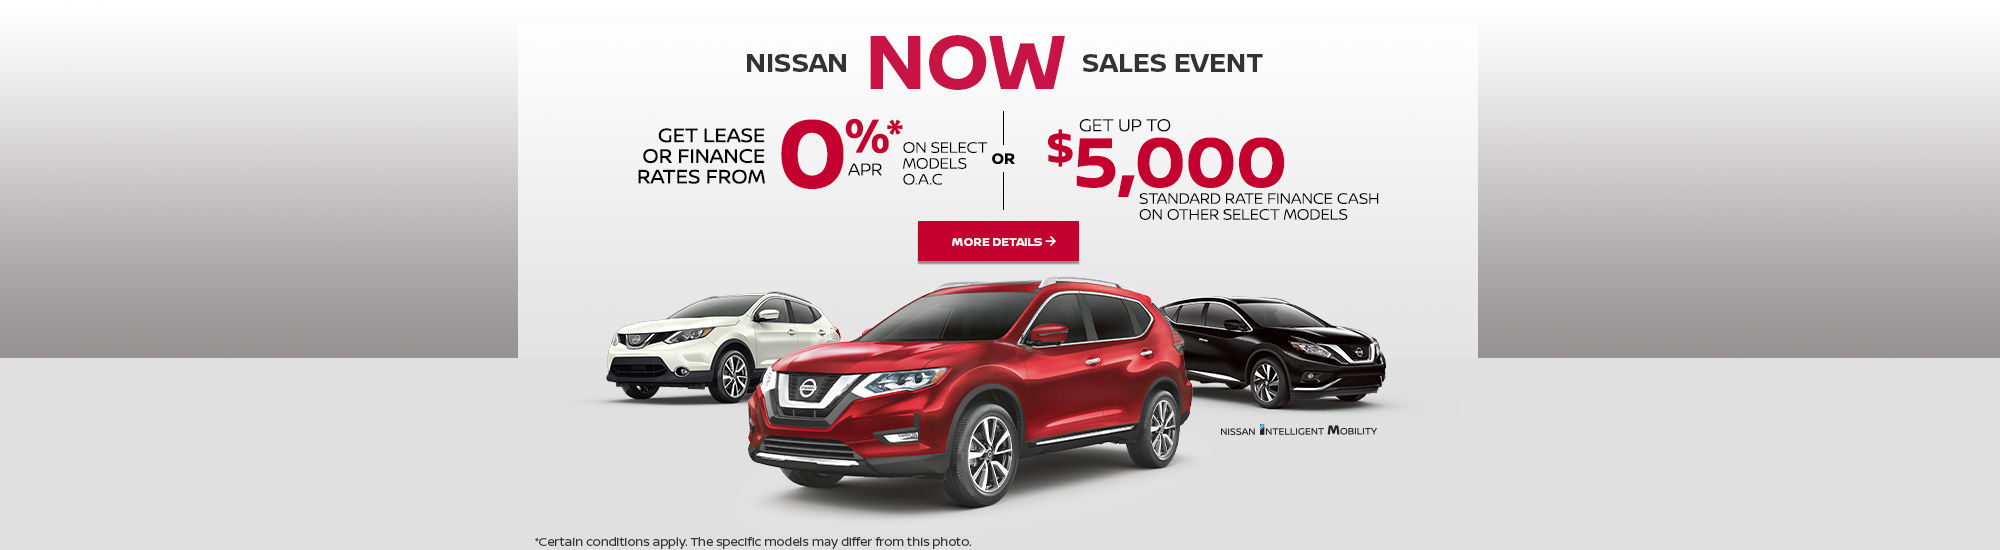 Monthly Nissan Sales Event (Charly-NS) (Copy)